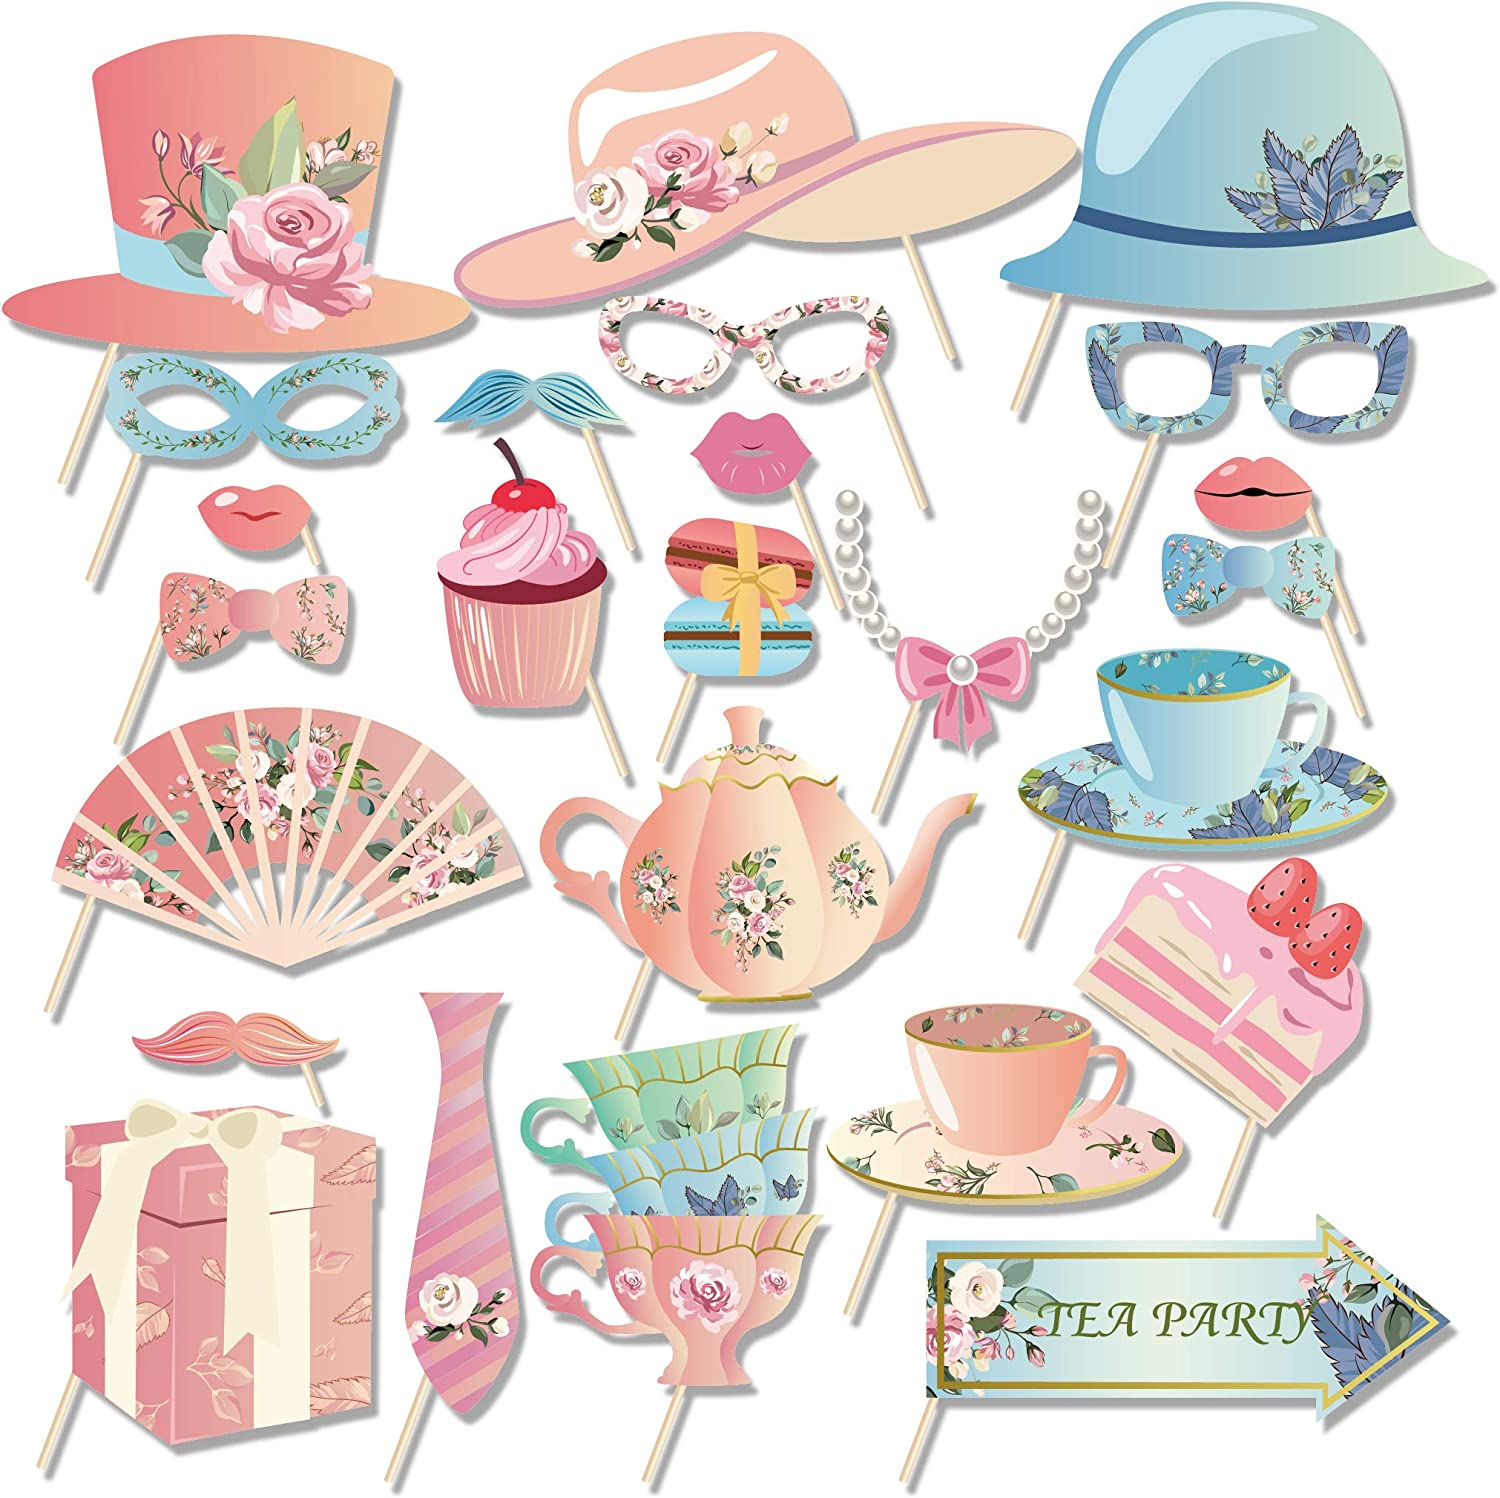 CC HOME Tea Party Photo Booth Props,Floral Party Supplies,Tea Garden Party Decorations 25CT